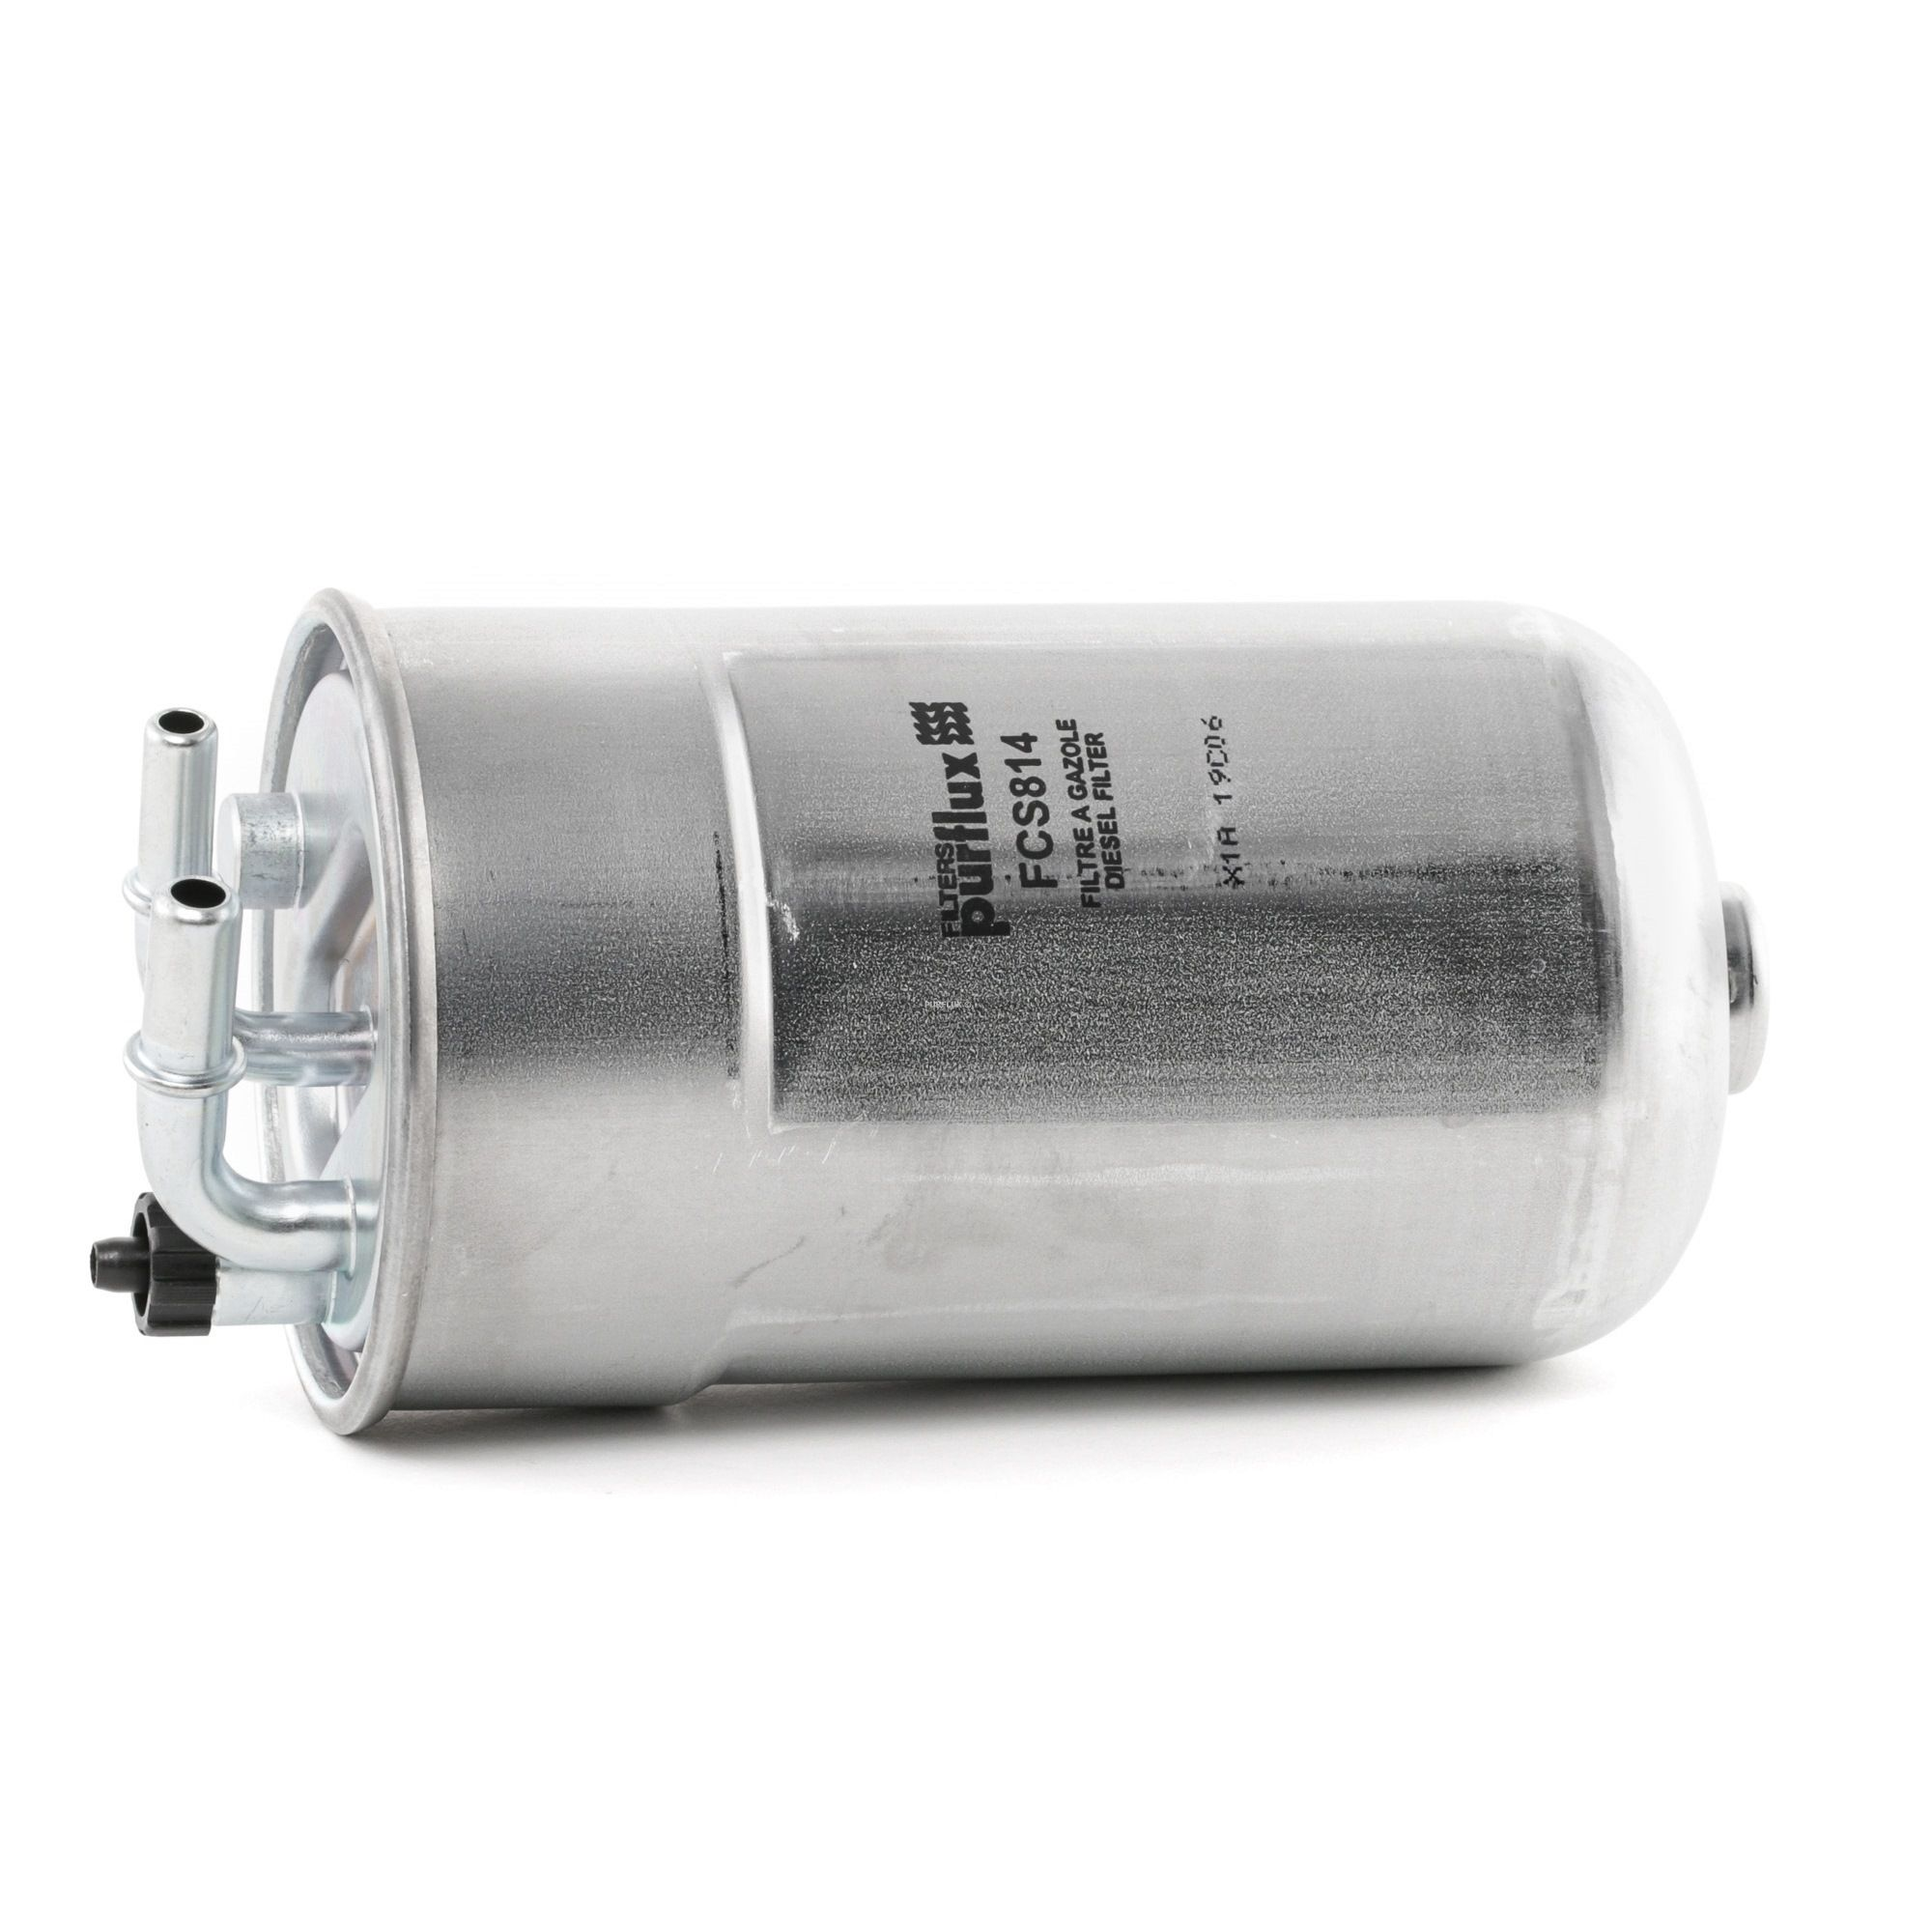 Image of PURFLUX Fuel Filter OPEL,VAUXHALL FCS814